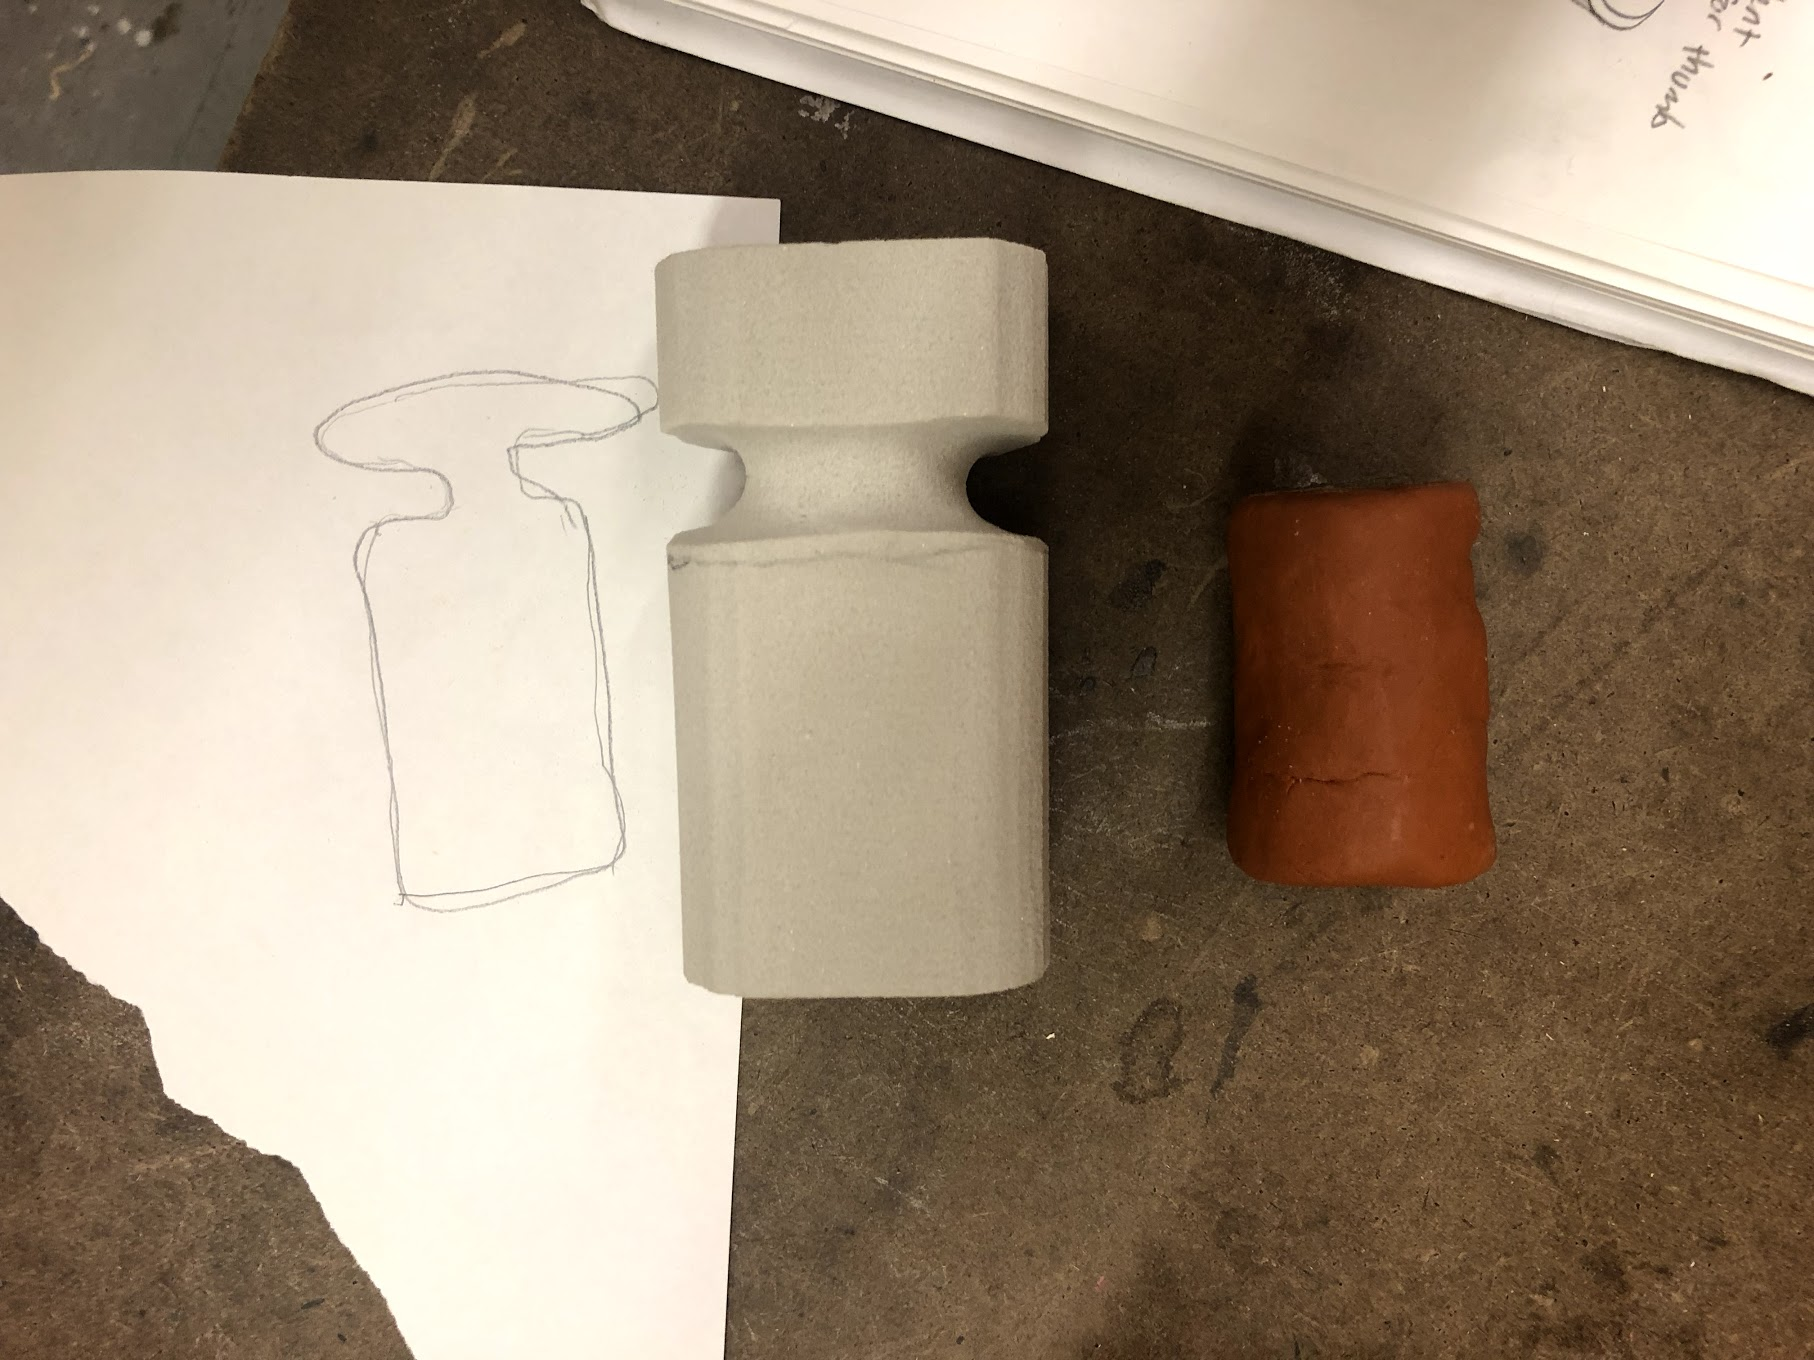 Using the orthographic projection to shape my model.